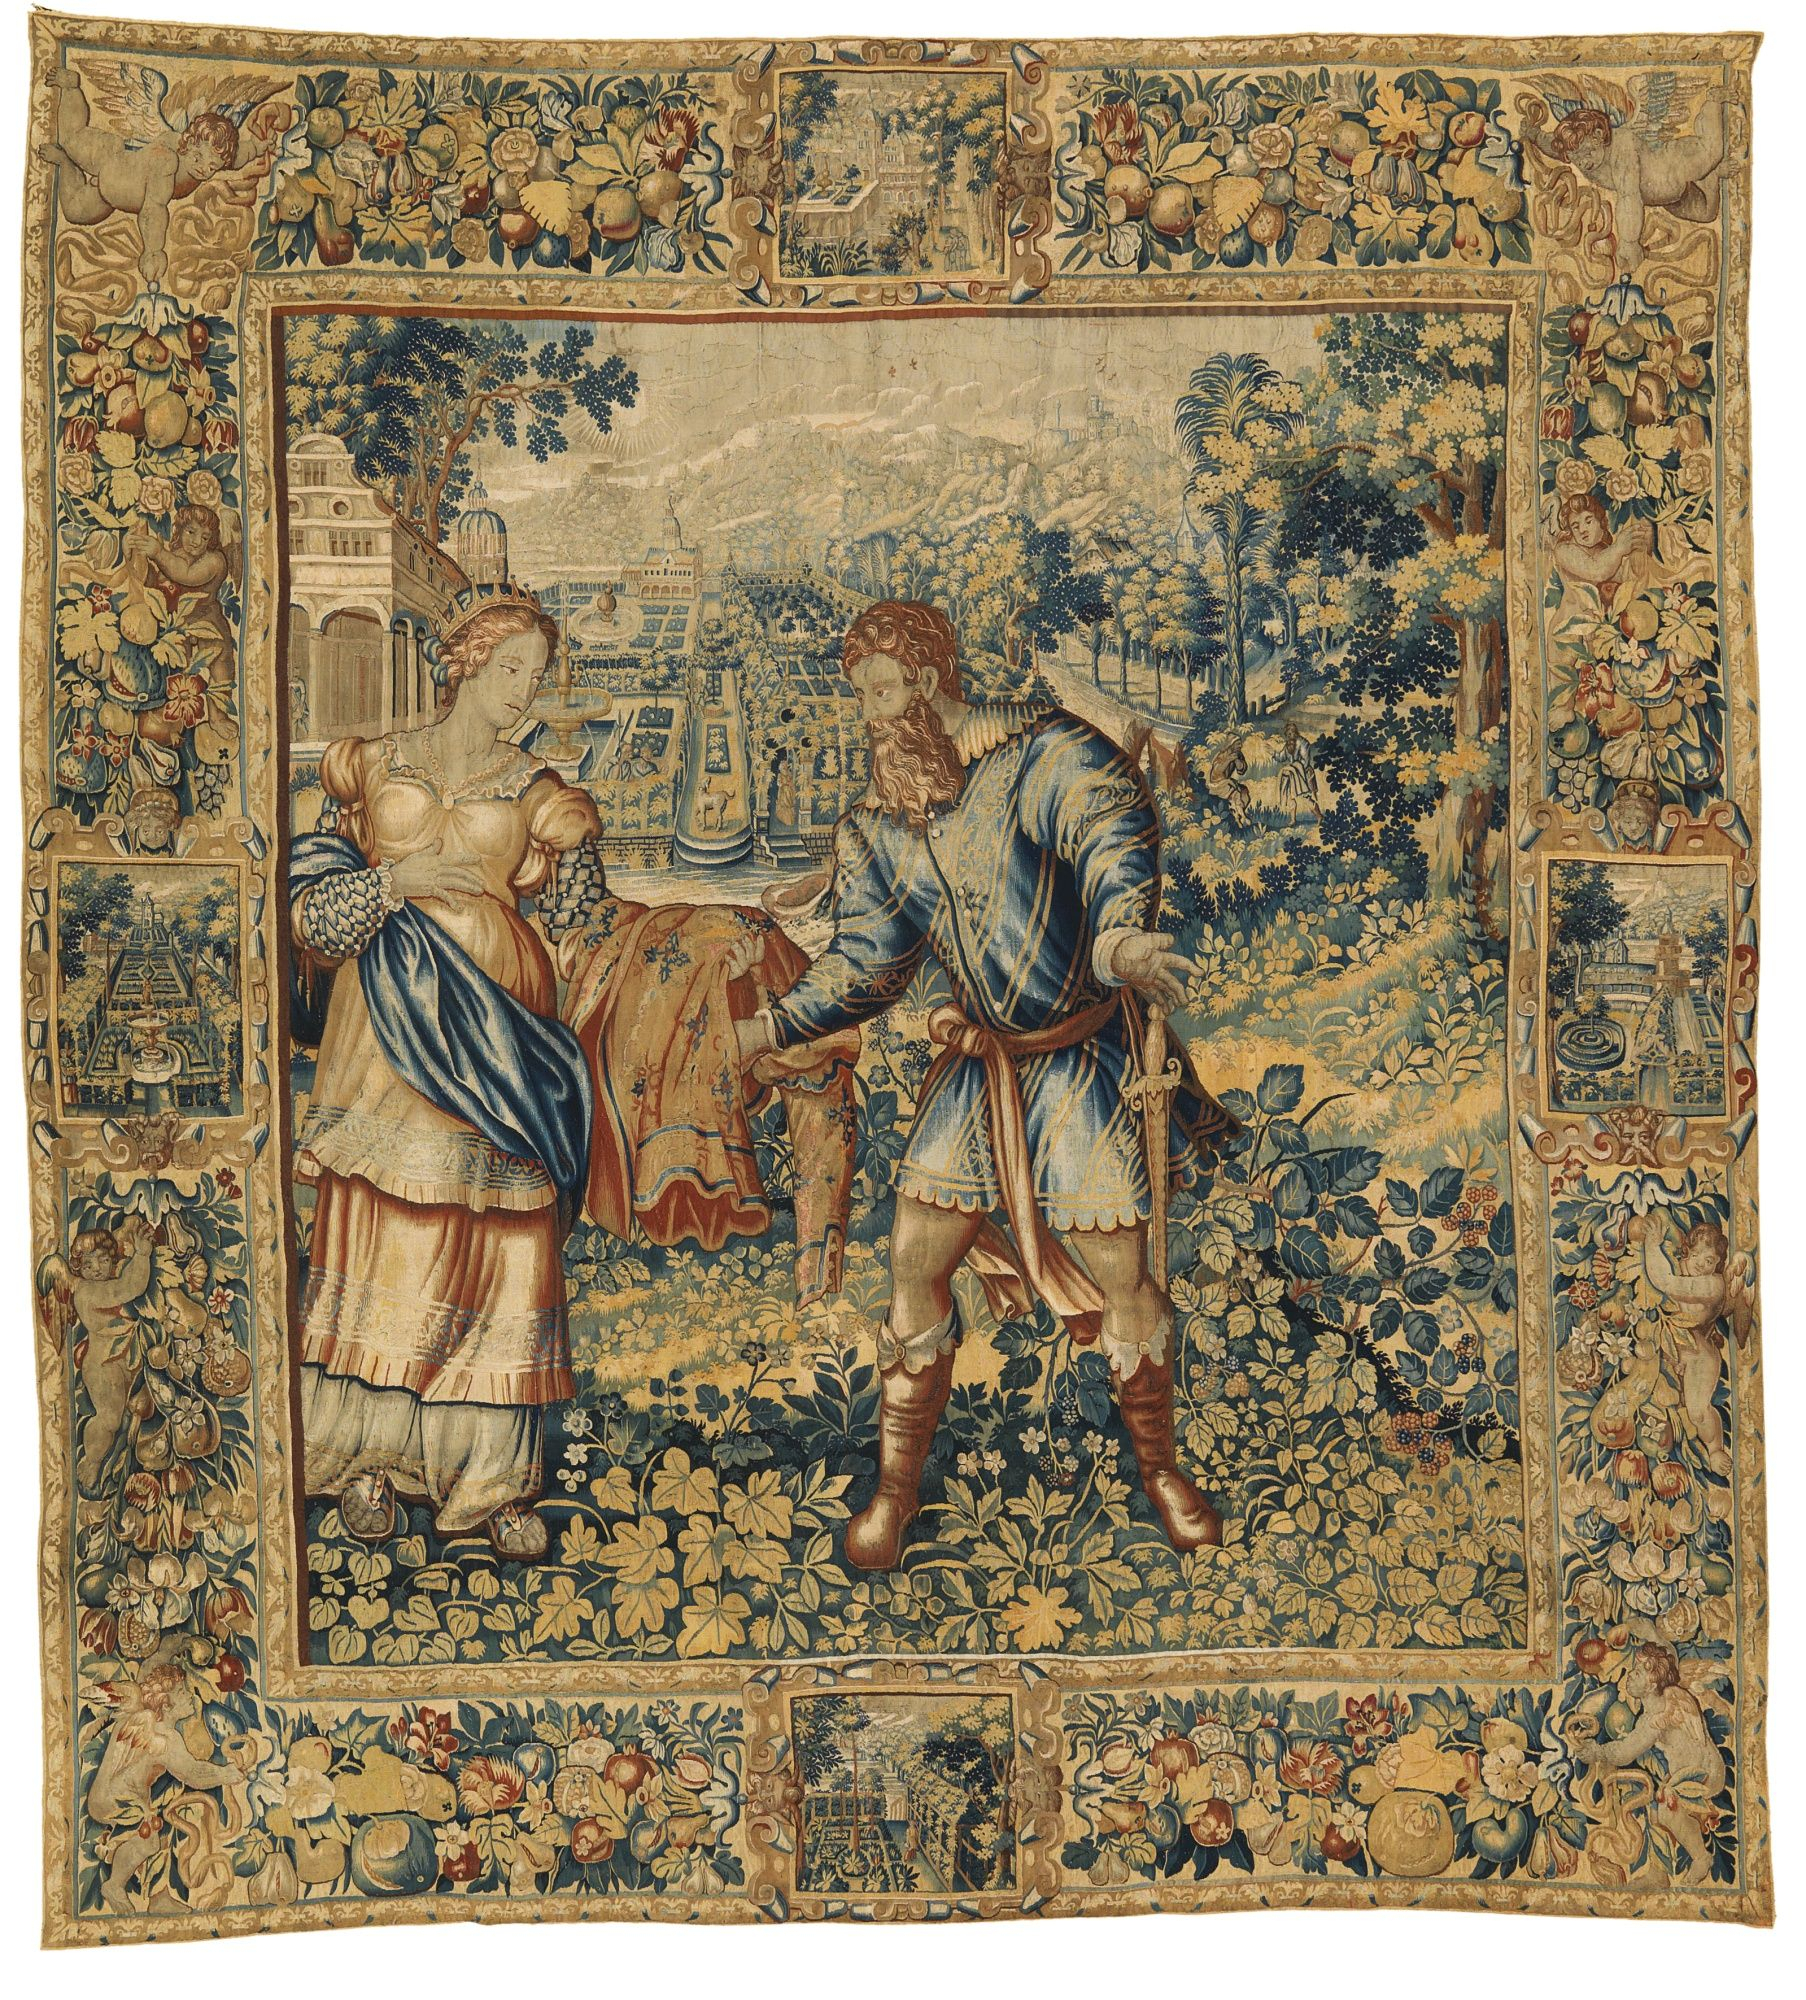 100+ Tapestry Ideas | Tapestry, Art, Medieval Tapestry In Latest Blended Fabric Saint Joseph European Tapestries (View 13 of 20)